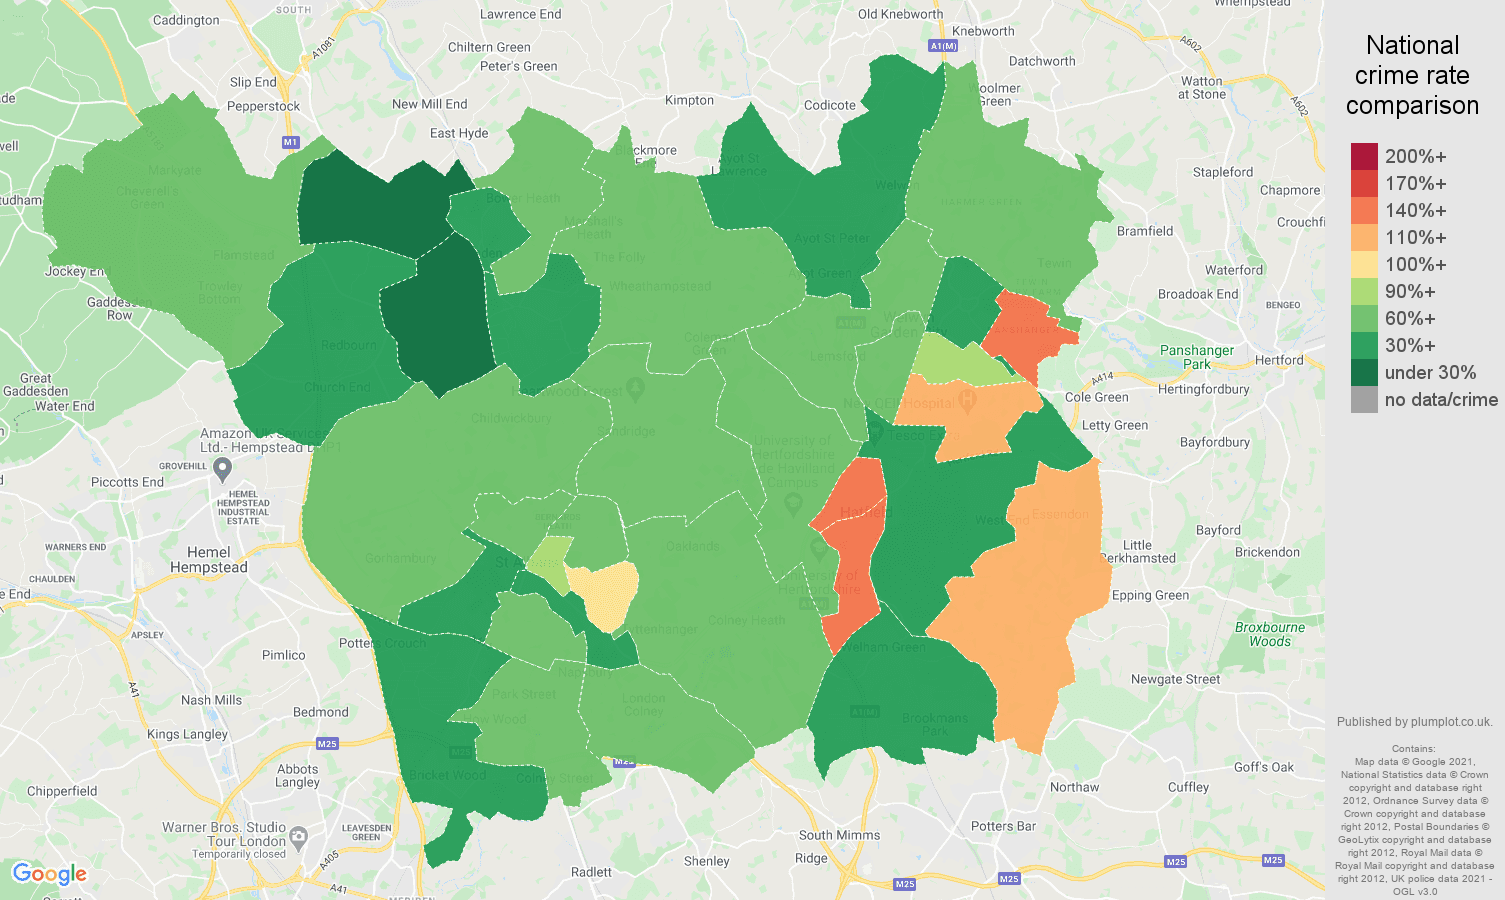 St Albans violent crime rate comparison map